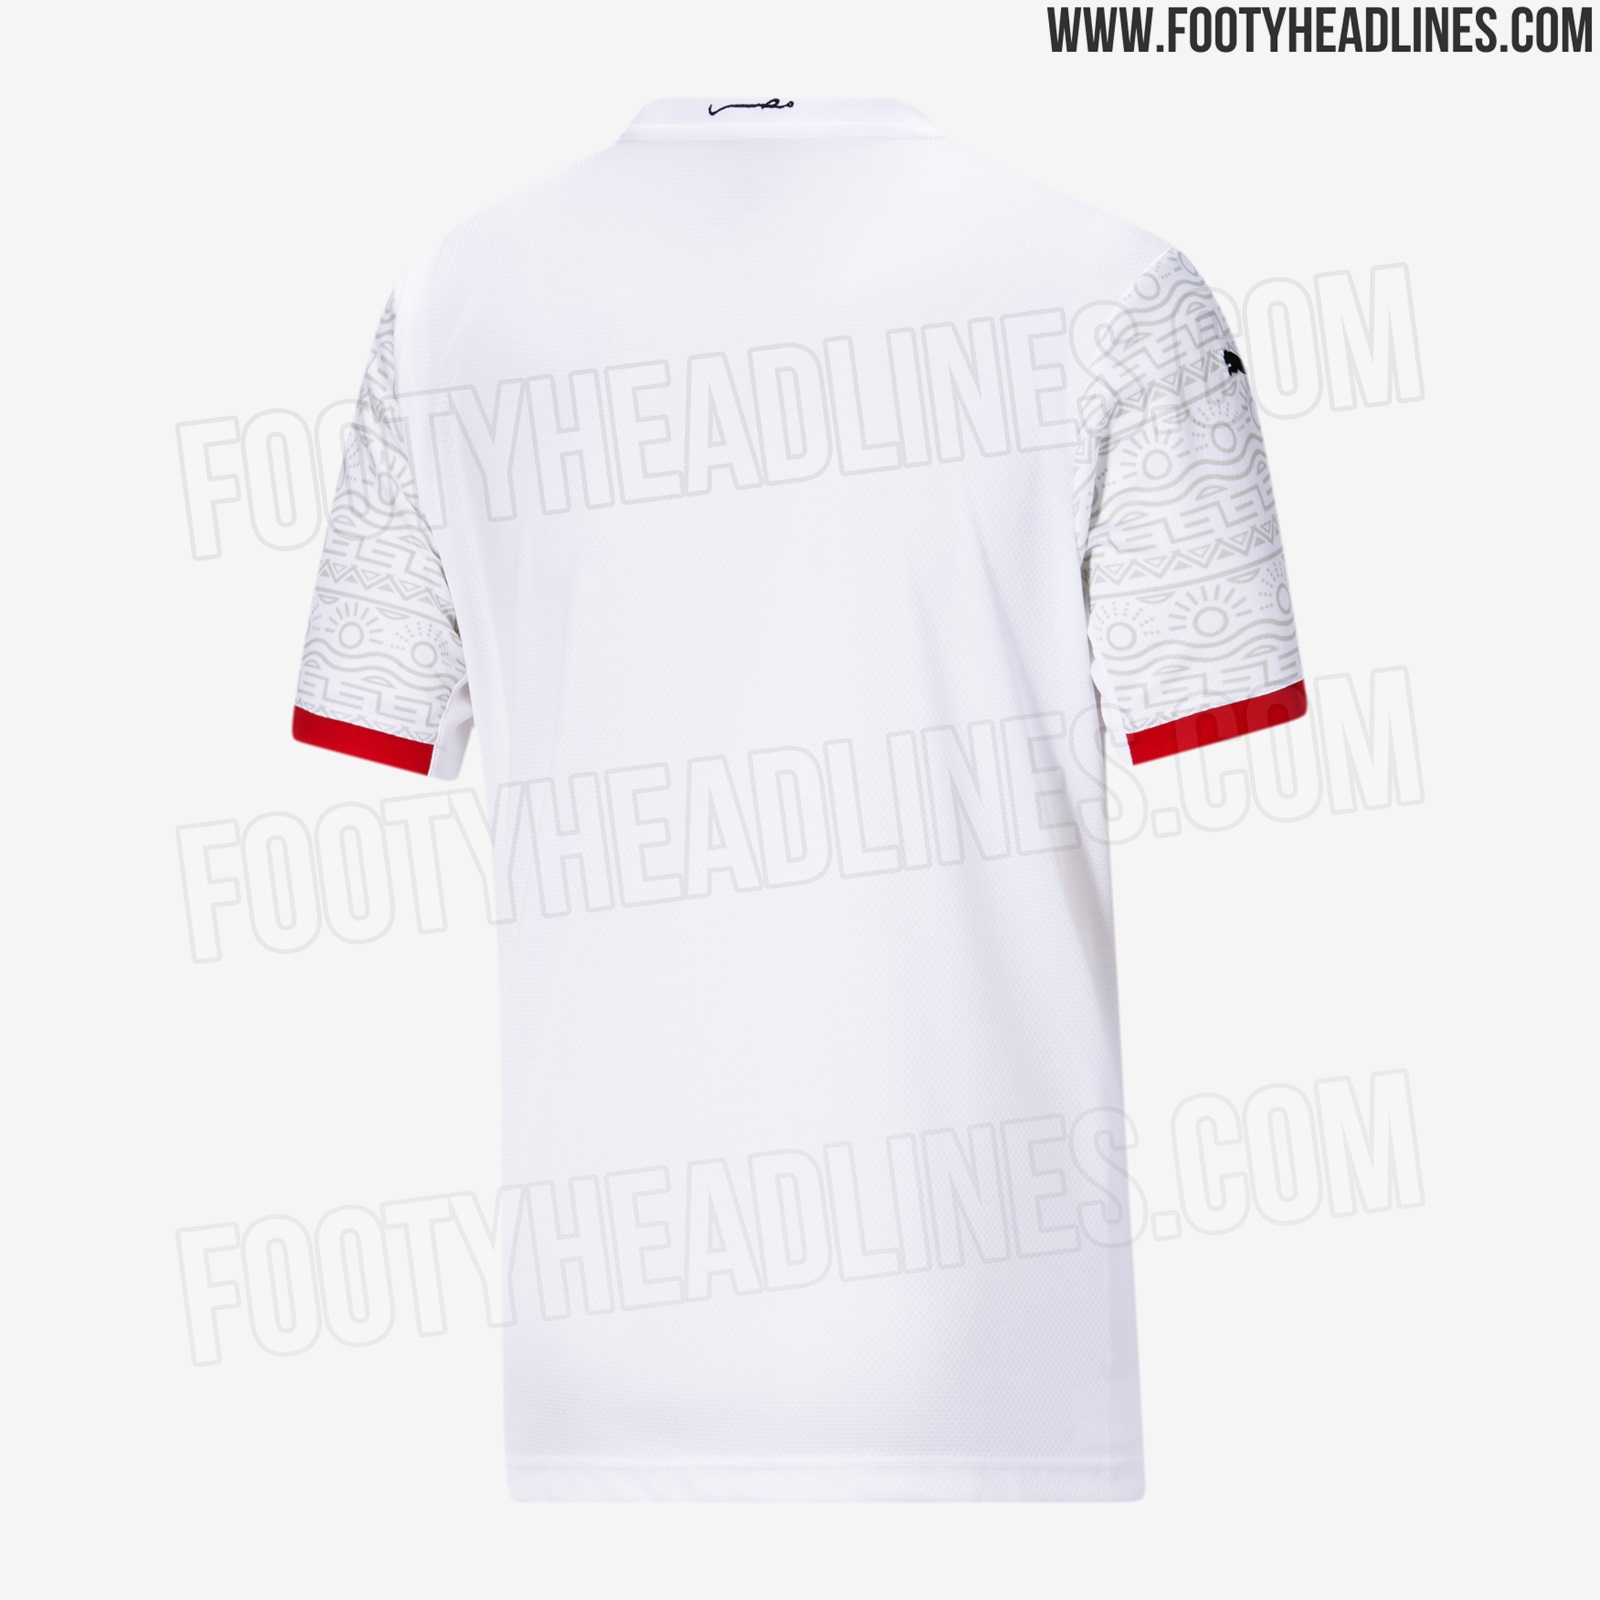 egypt-2020-home-away-kits-5.jpg